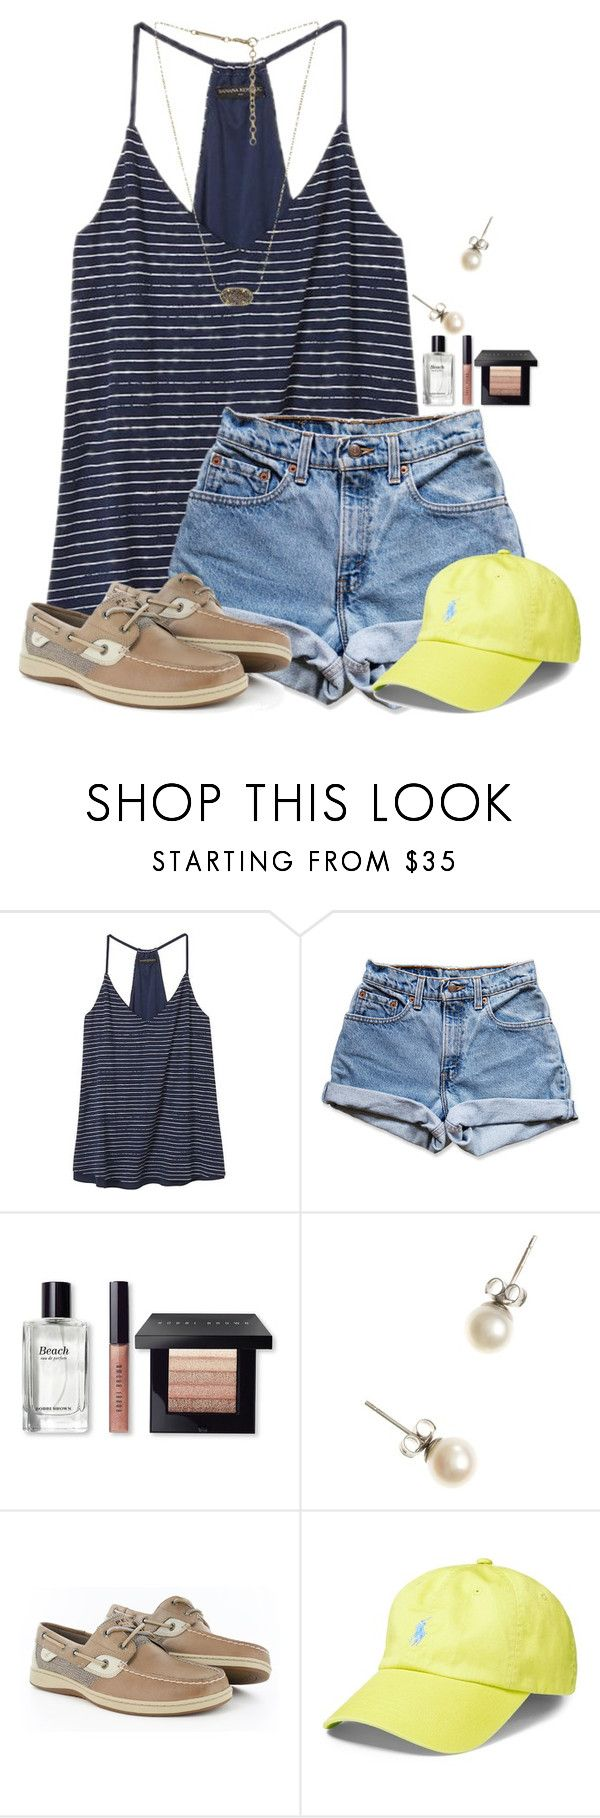 """""""Who watches The Food Network Star?"""" by flroasburn on Polyvore featuring Banana Republic, Levi's, Bobbi Brown Cosmetics, J.Crew, Sperry, Polo Ralph Lauren and Kendra Scott"""